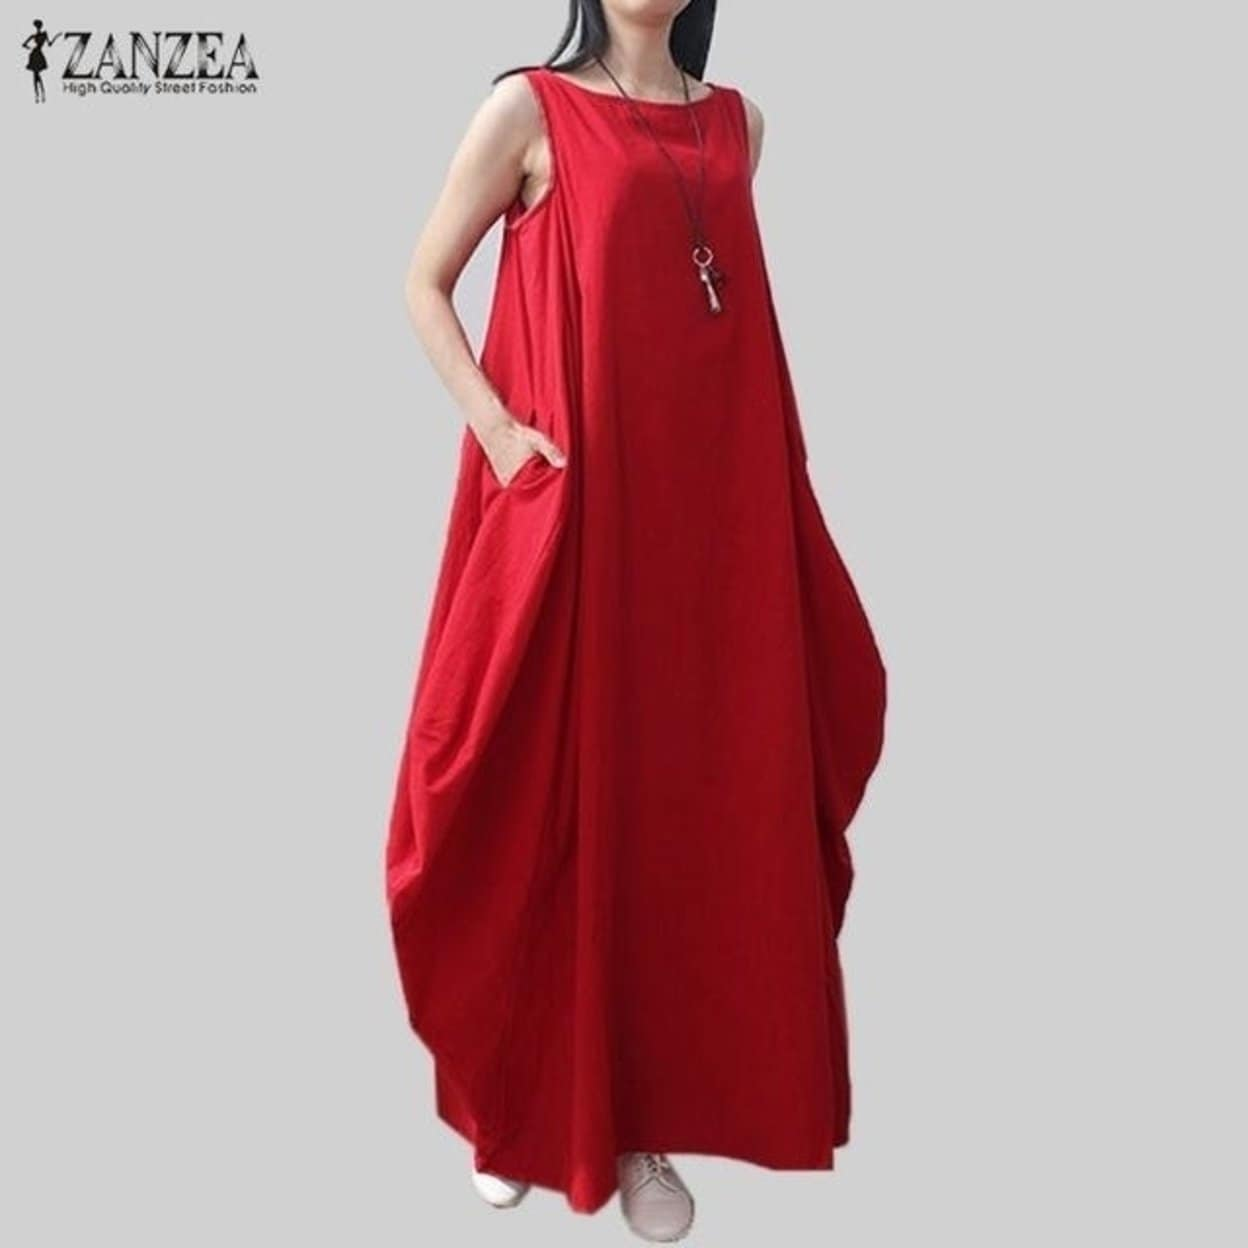 41096c8c23d Casual Retro Solid Summer Dress 2017 Women Elegant Loose Sleeveless O Neck Dress  Cotton Linen Long Maxi Dress Vestidos Plus Size